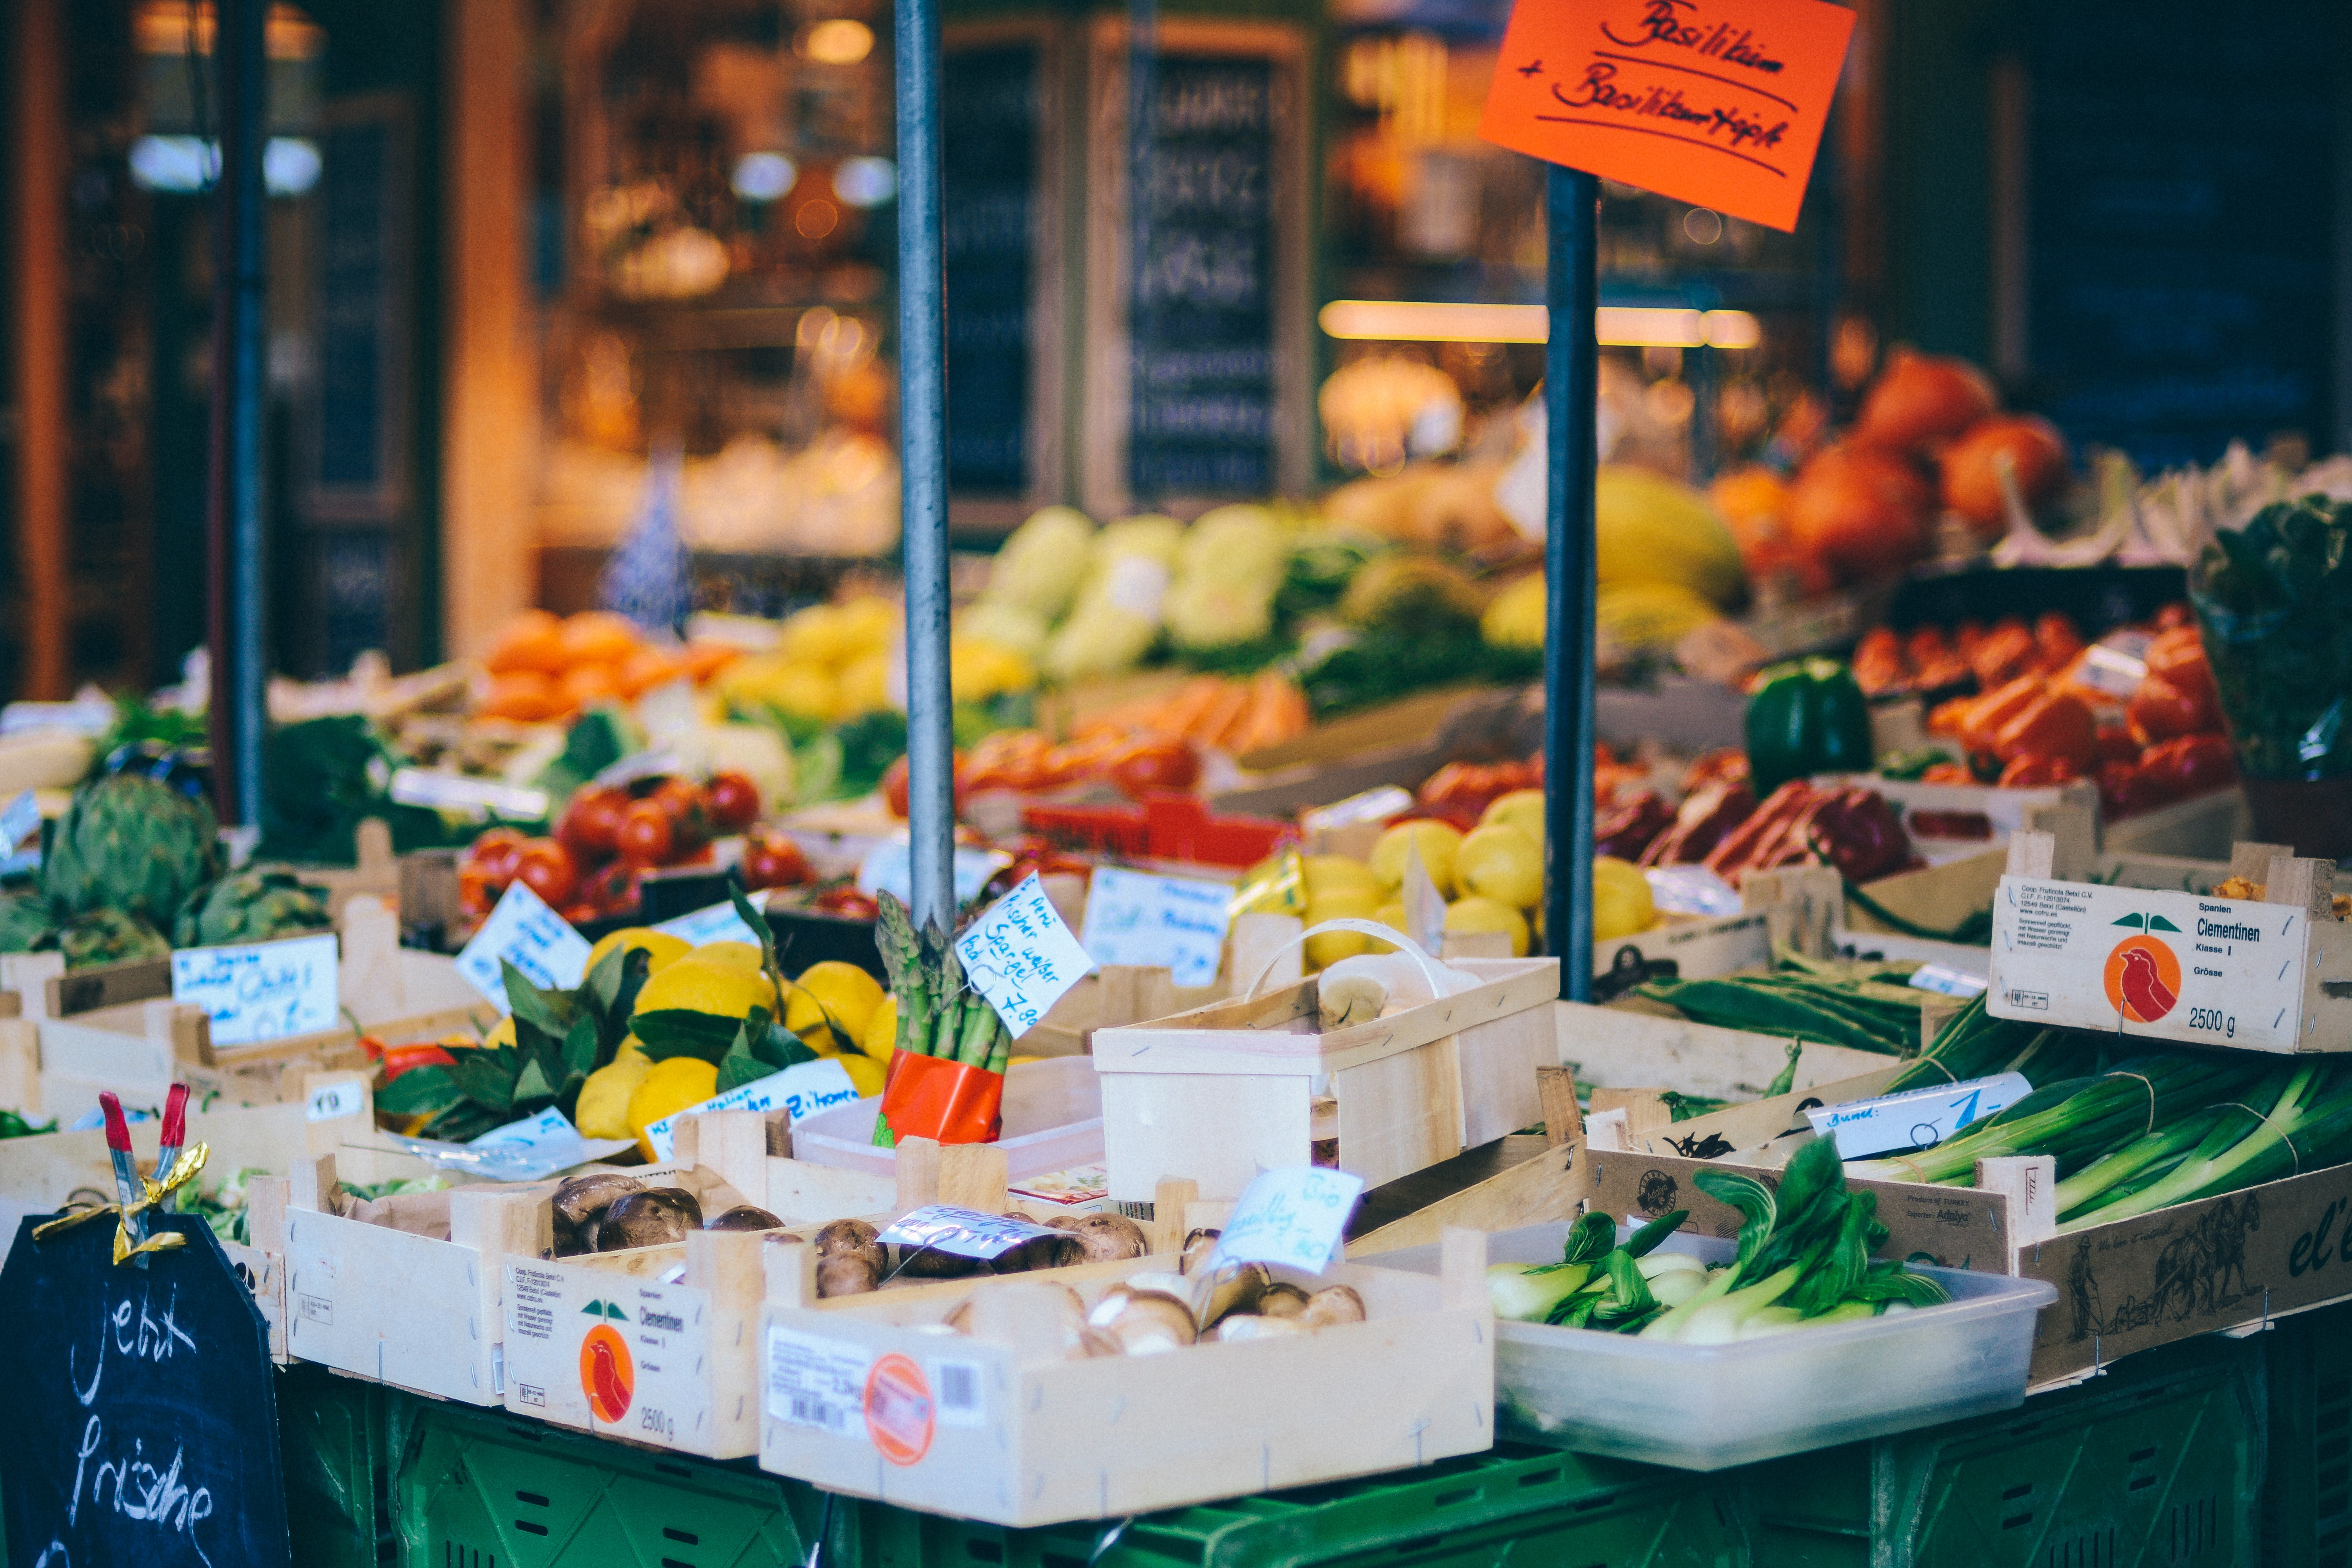 shallow focus photography of produce stand